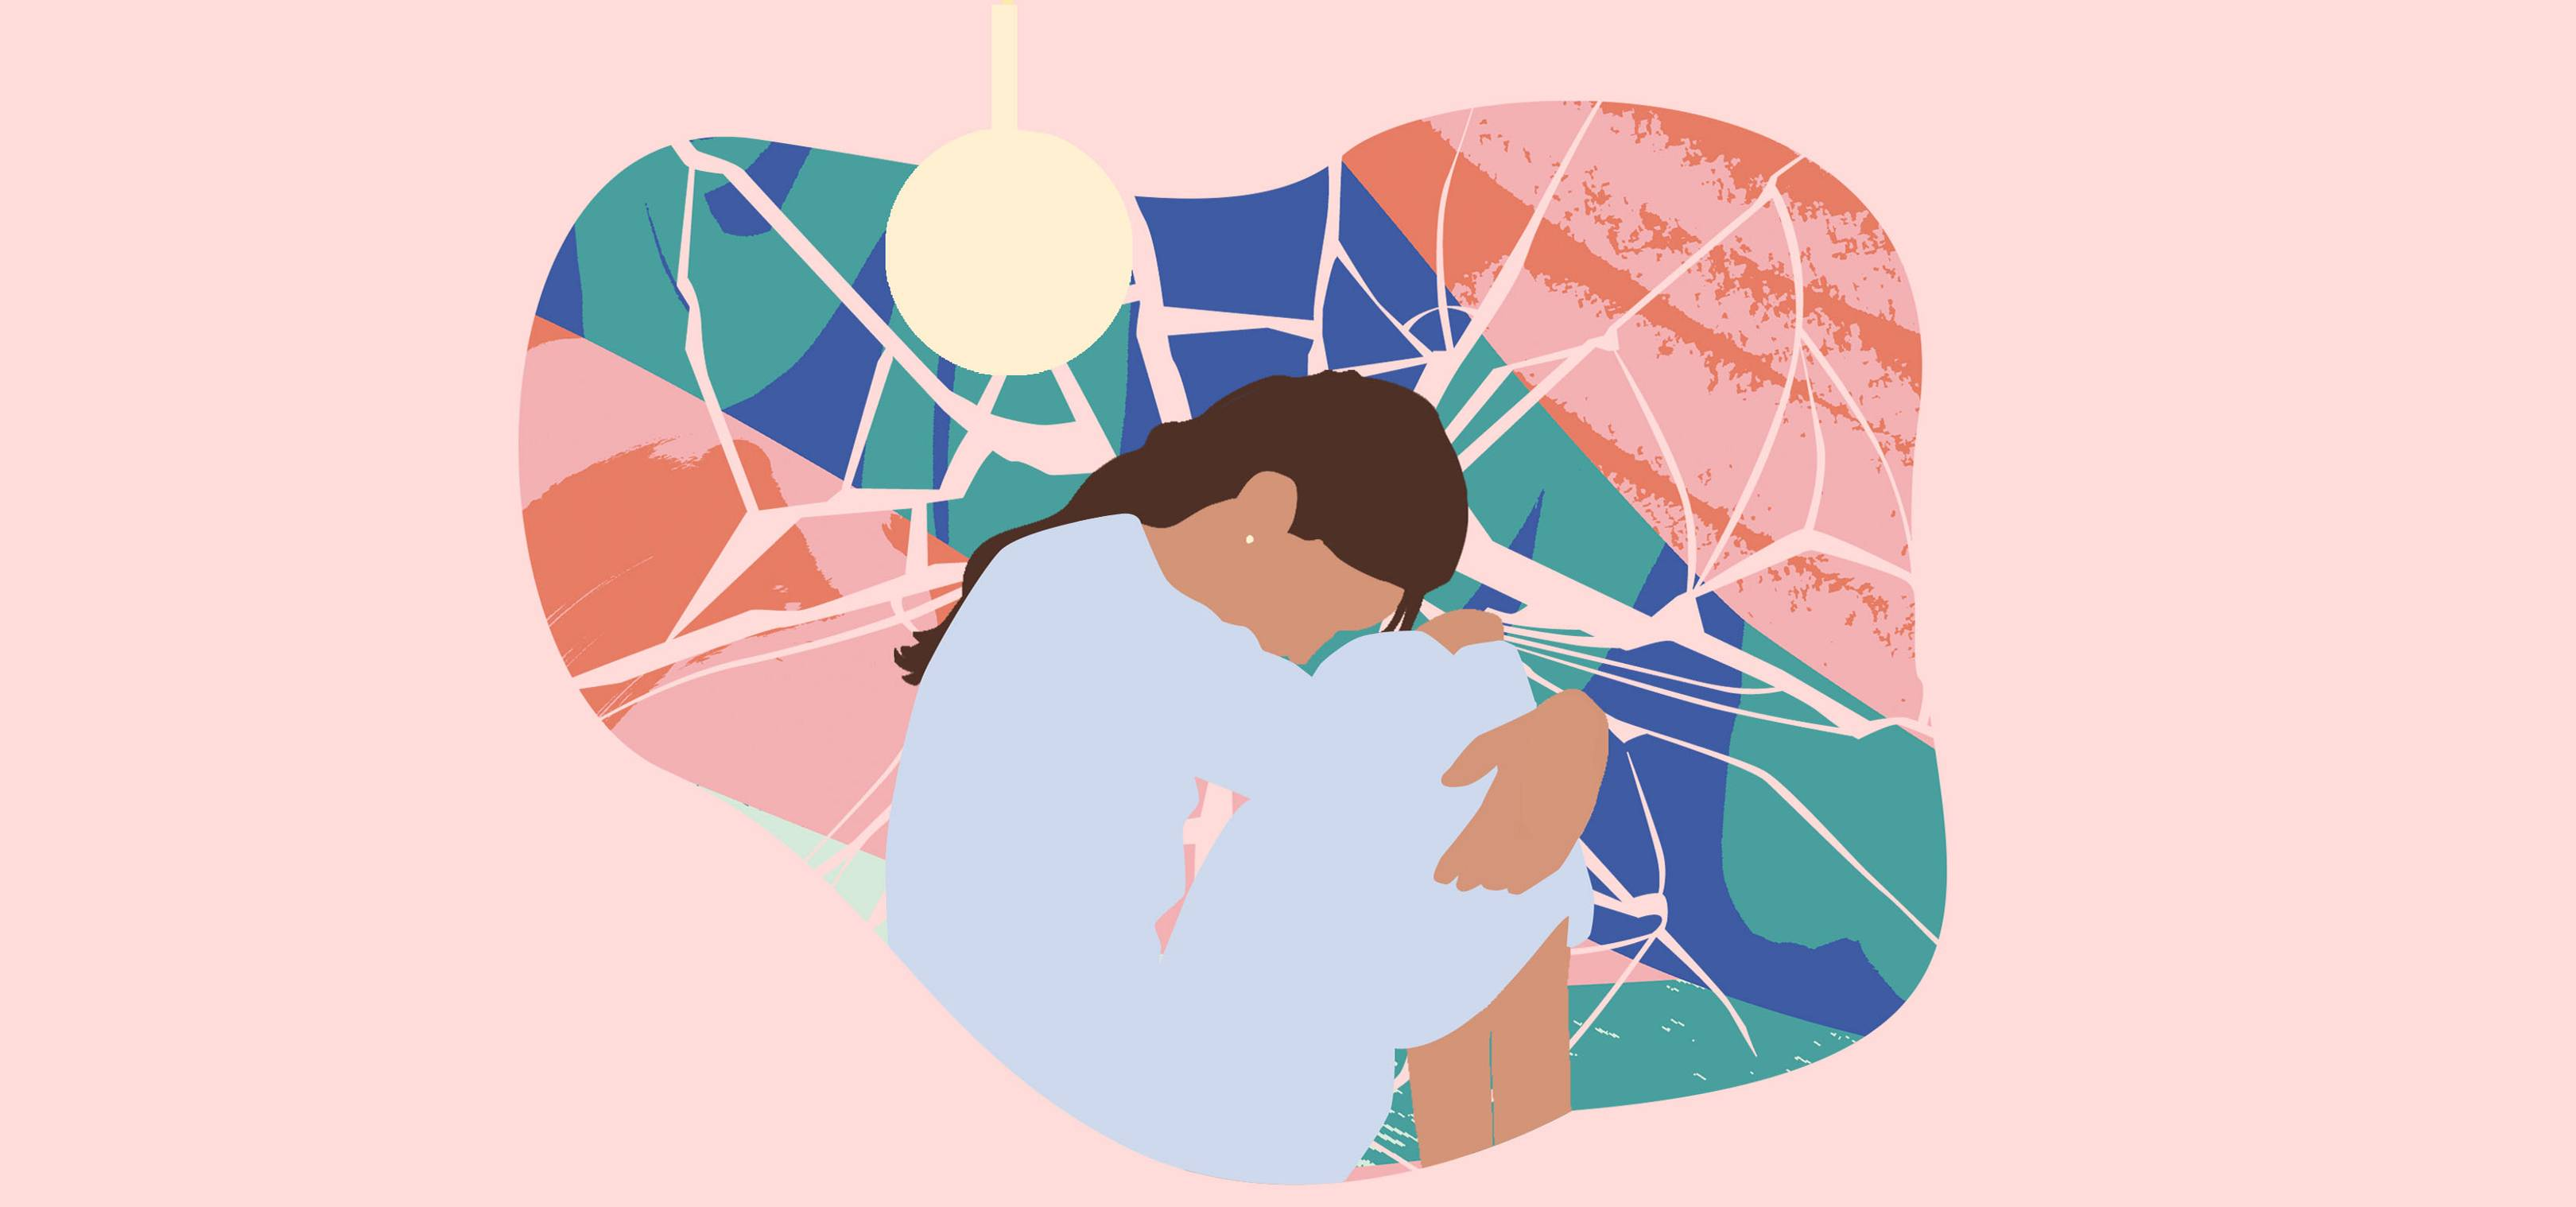 Staying home helps fight Coronavirus but can make life worse for those in abusive relationships. Here's how you can get support